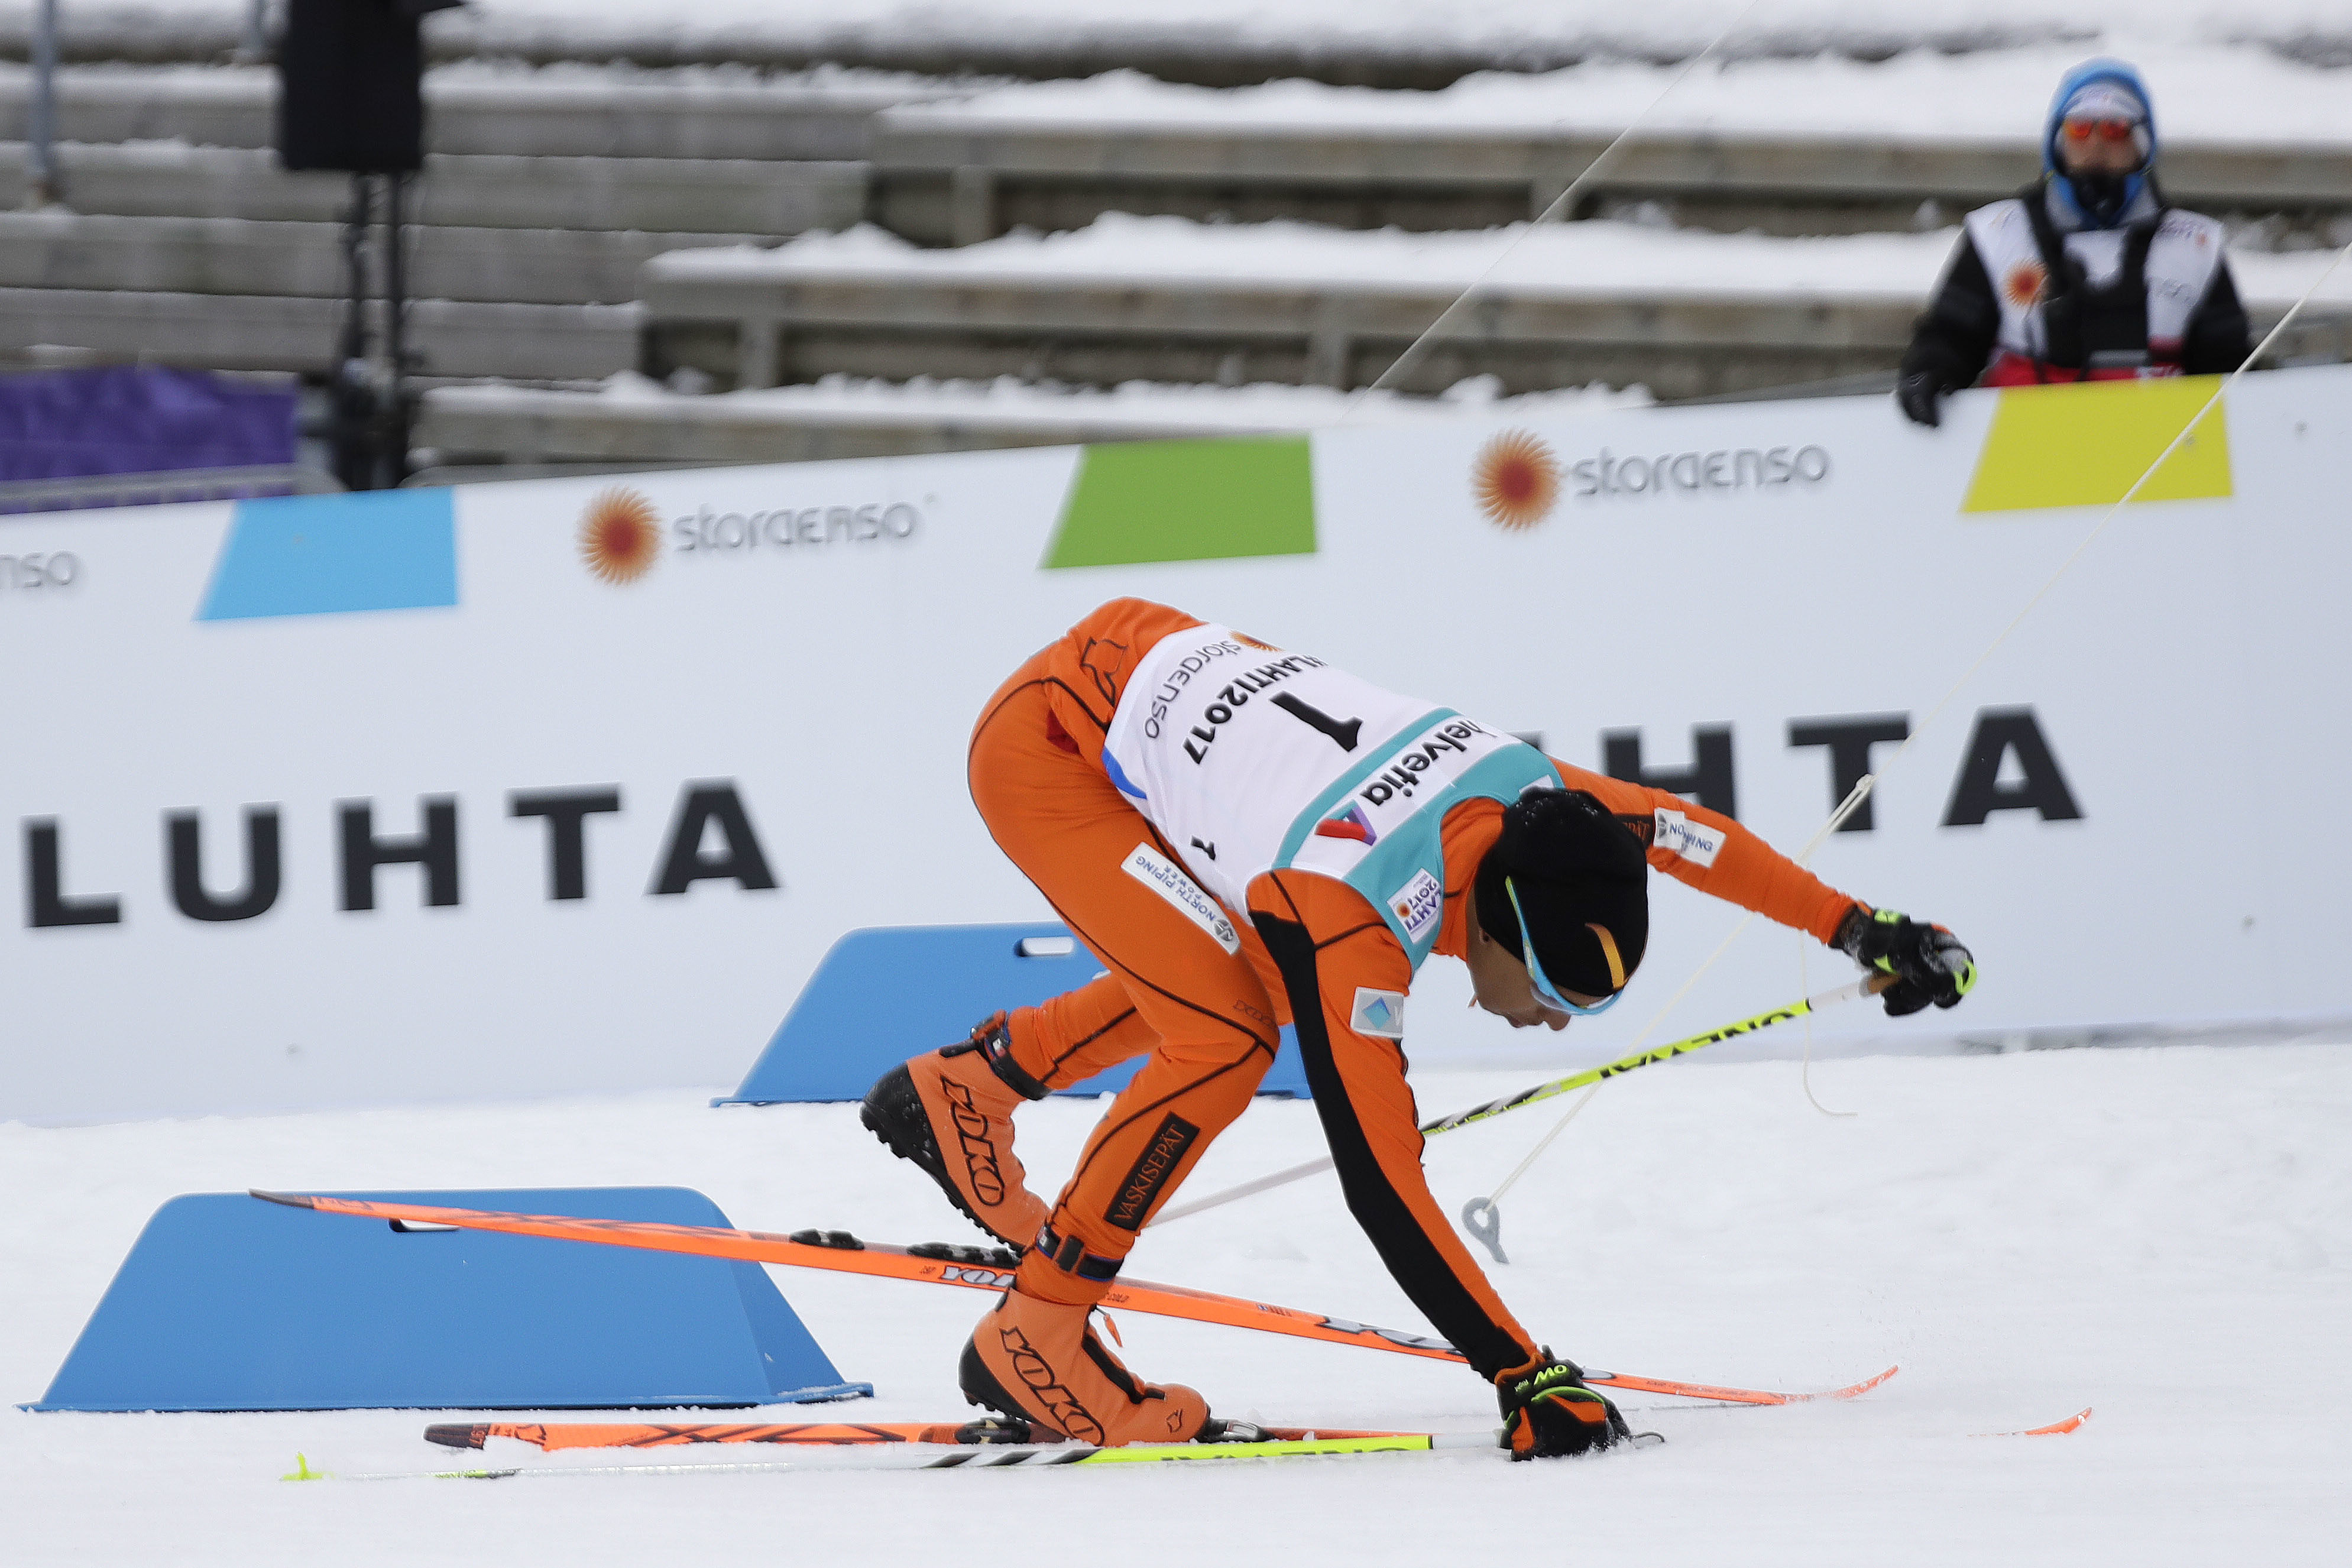 Adrian Solano of Venezuela falls during the men's 10 km cross-country individual classic qualification race at the 2017 Nordic Skiing World Championships in Lahti, Finland, Wednesday, Feb. 22, 2017. (AP Photo/Matthias Schrader)